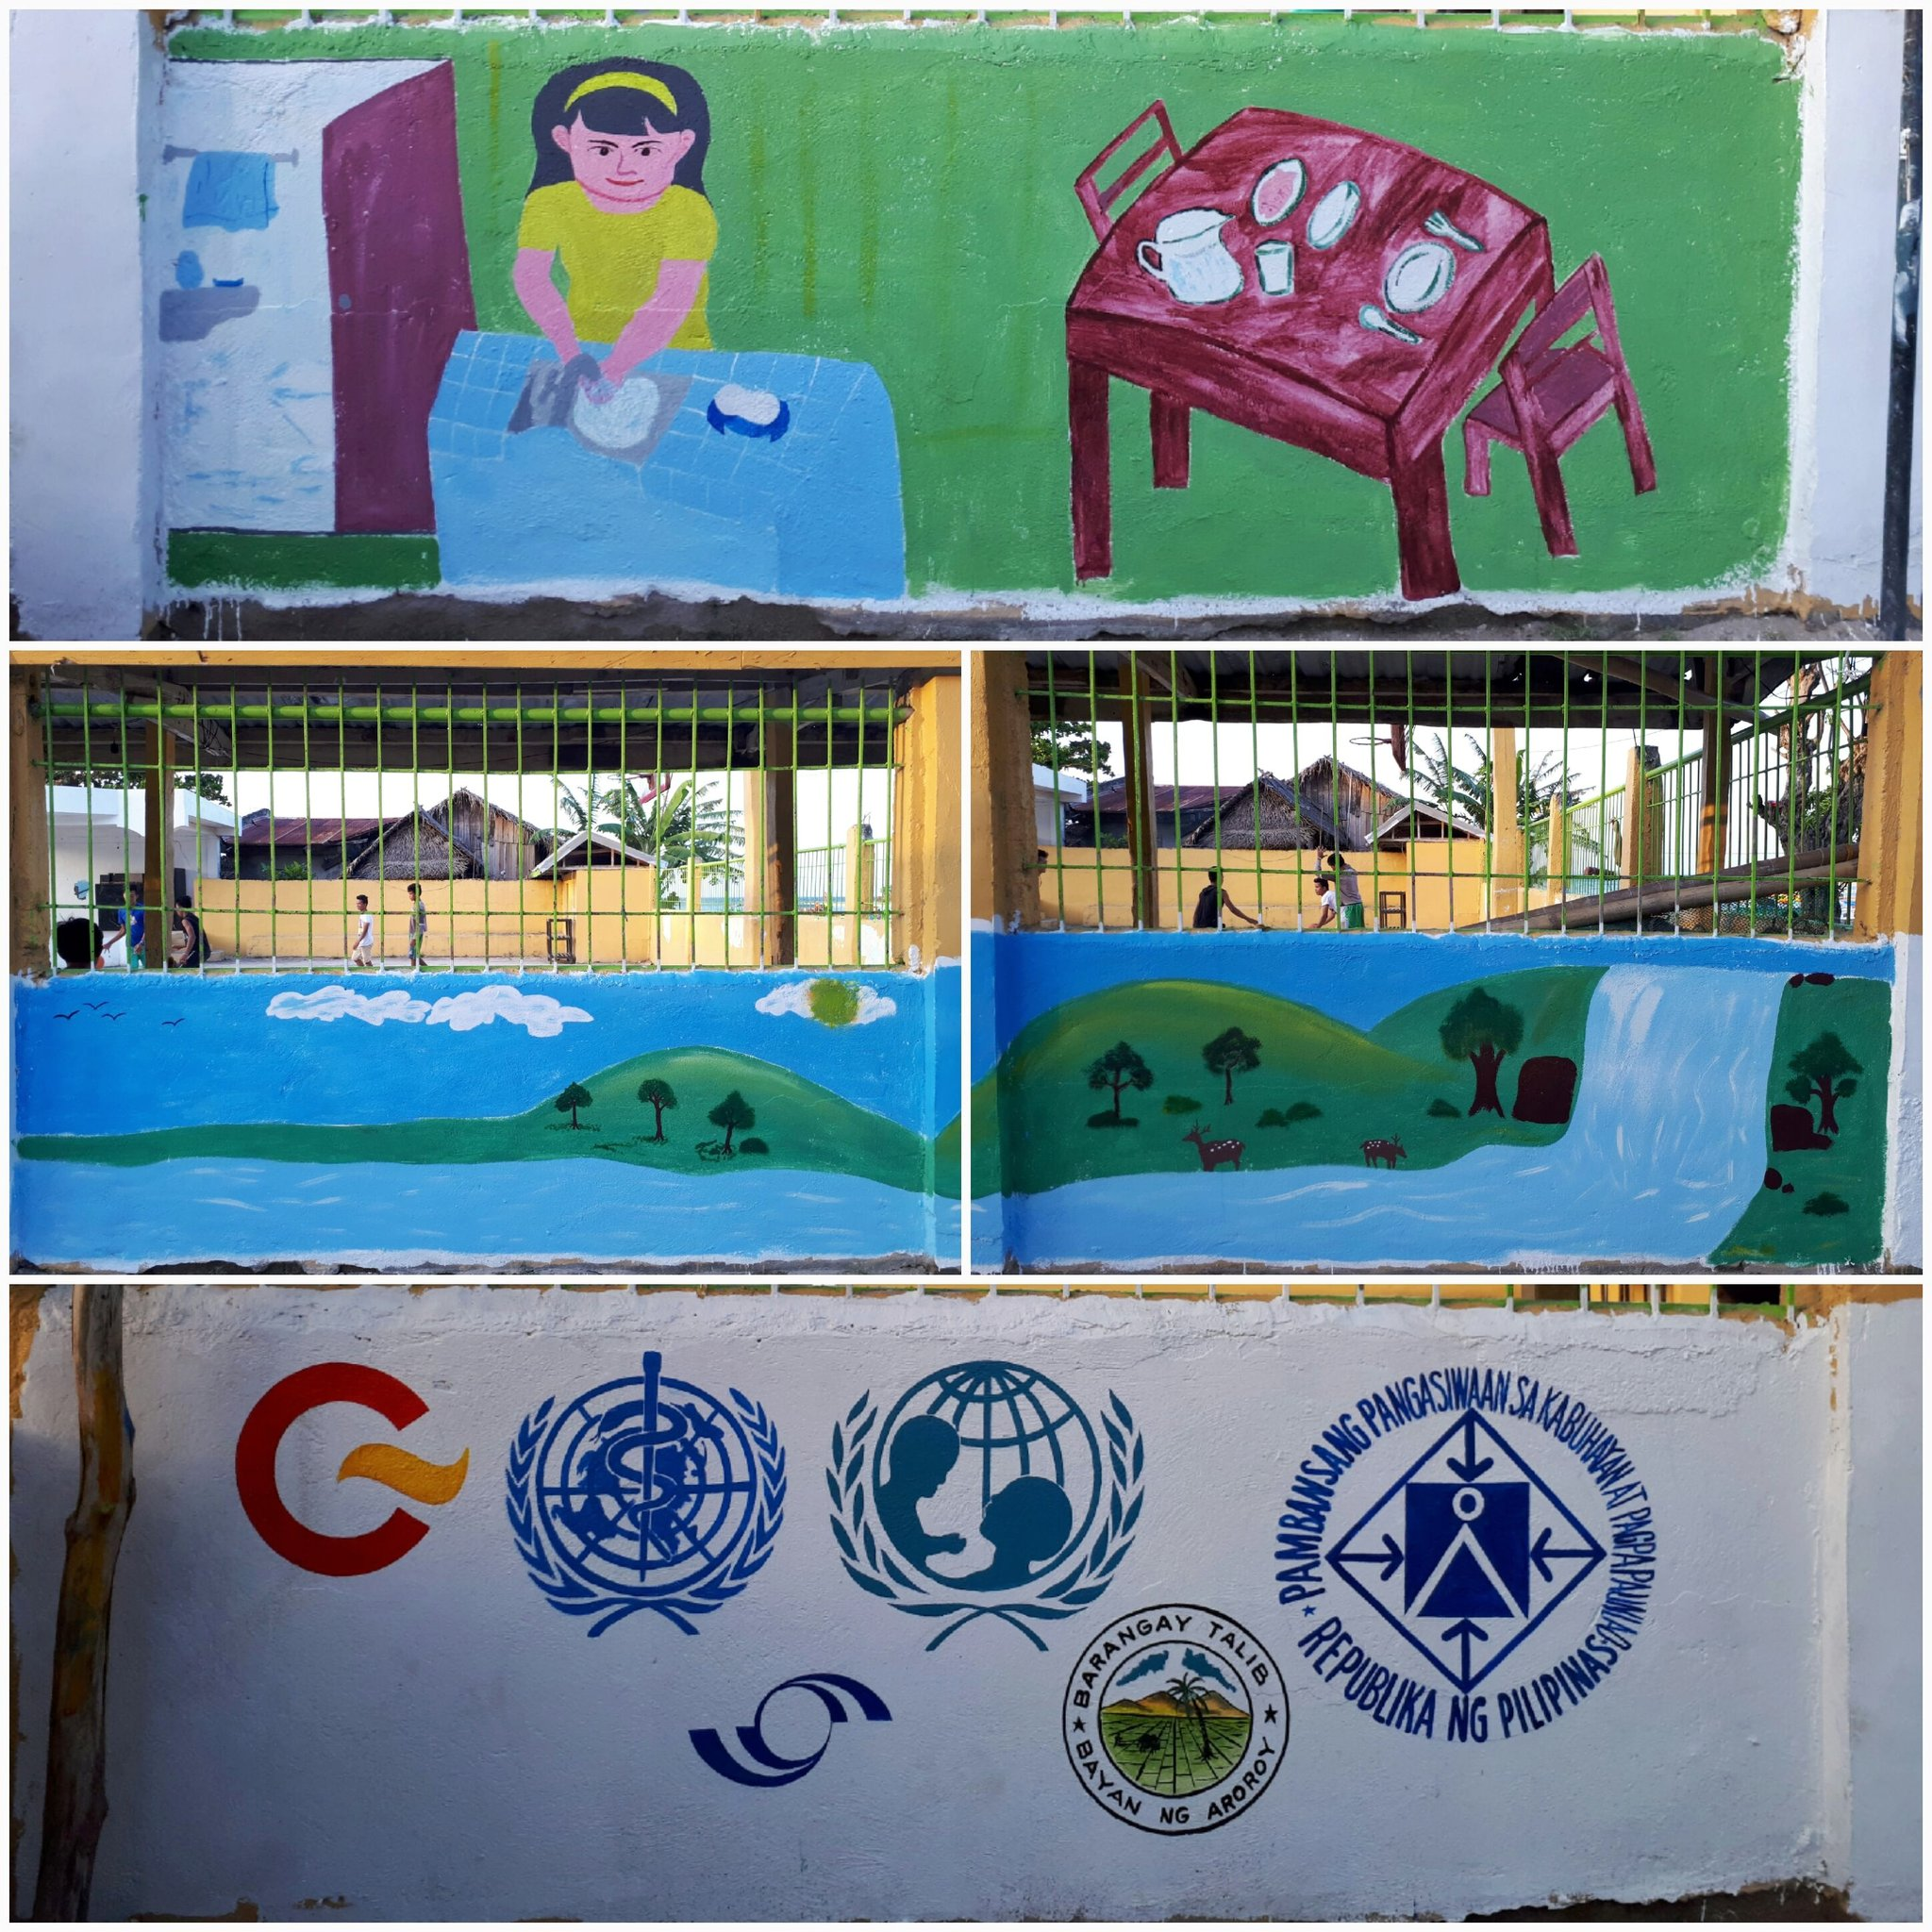 The #iWaSH community mural in Aroroy Masbate has been conceptualized by school boys and girls and their mothers. #WWDPH #GlobalGoals https://t.co/kuUbIdd617